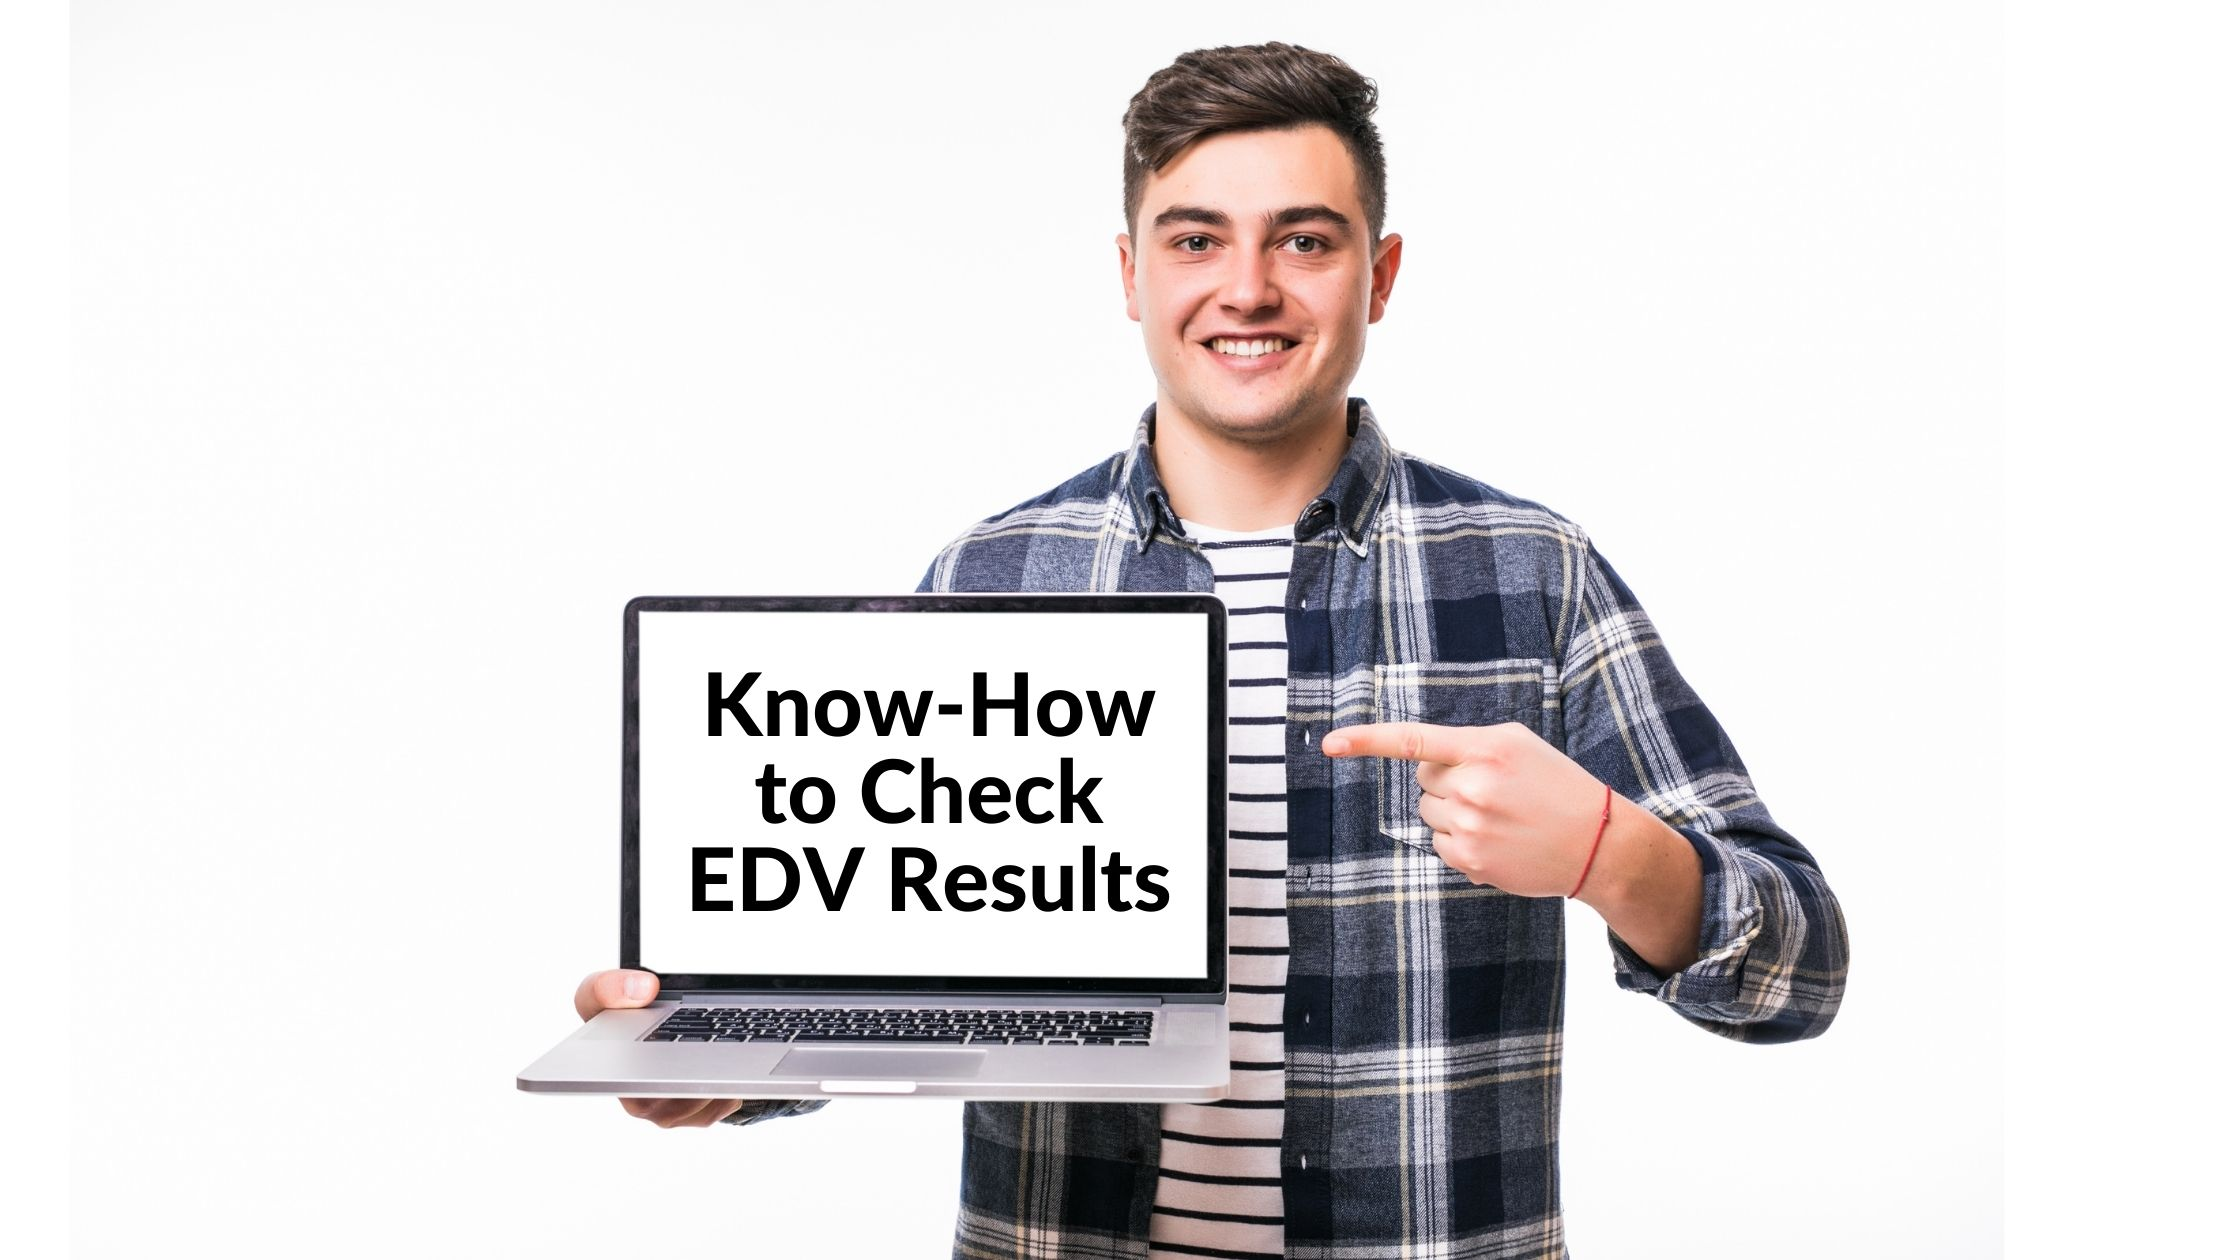 How to check EDV results in 2022